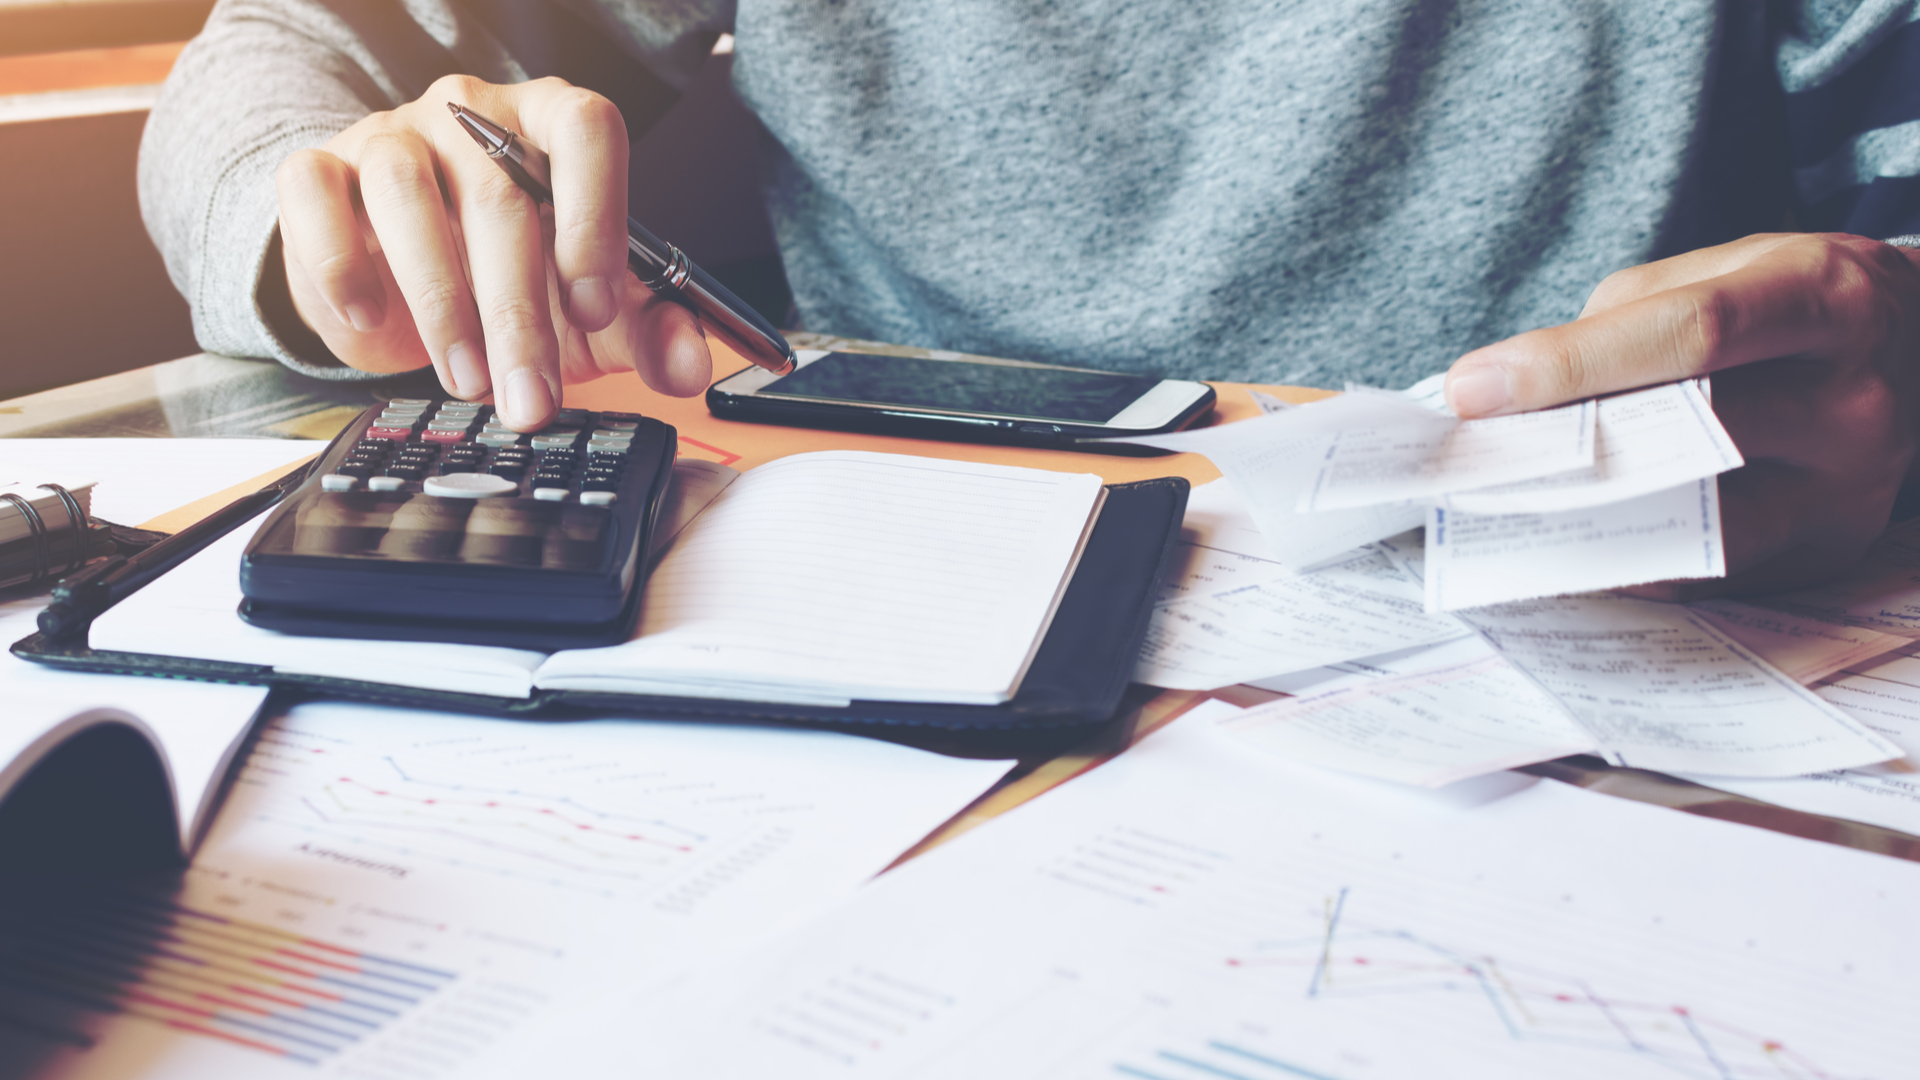 Calculating tax at home